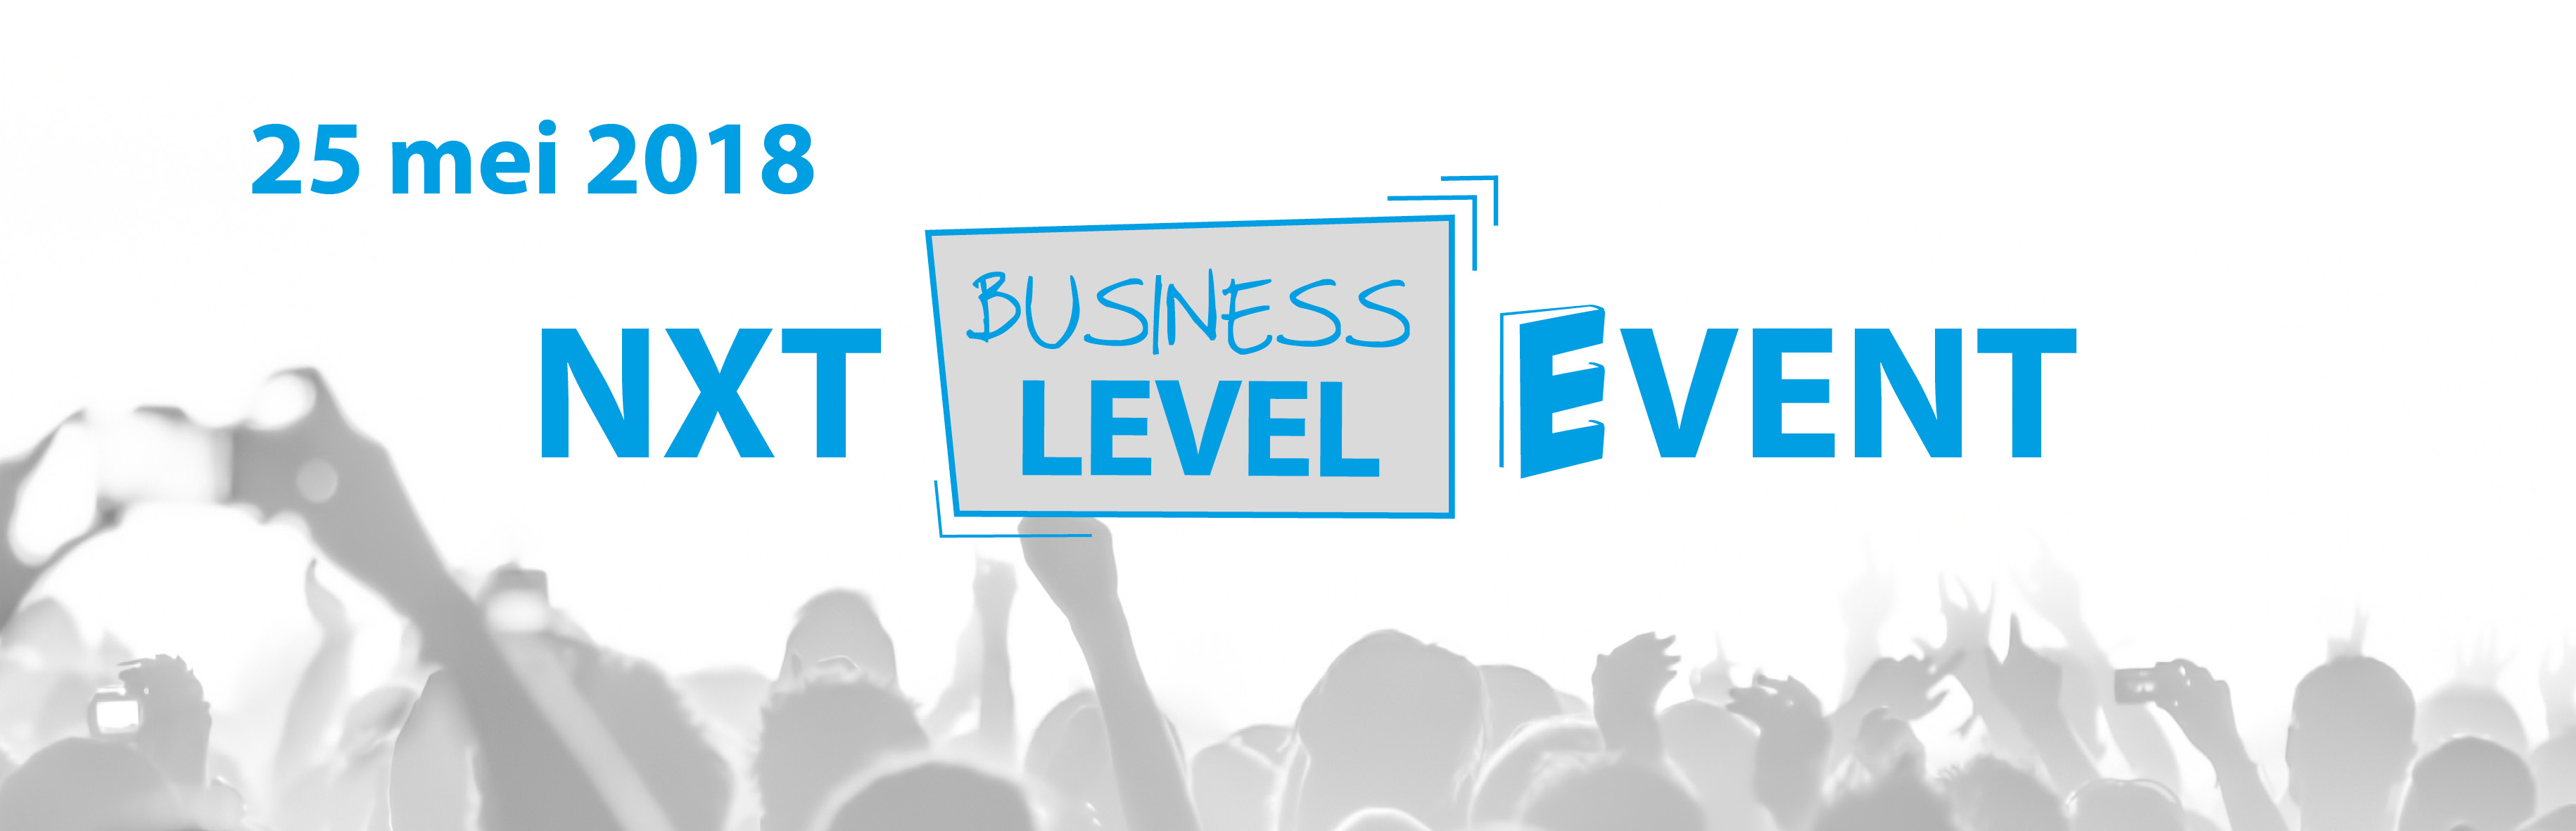 NXT Business Level Event Basic